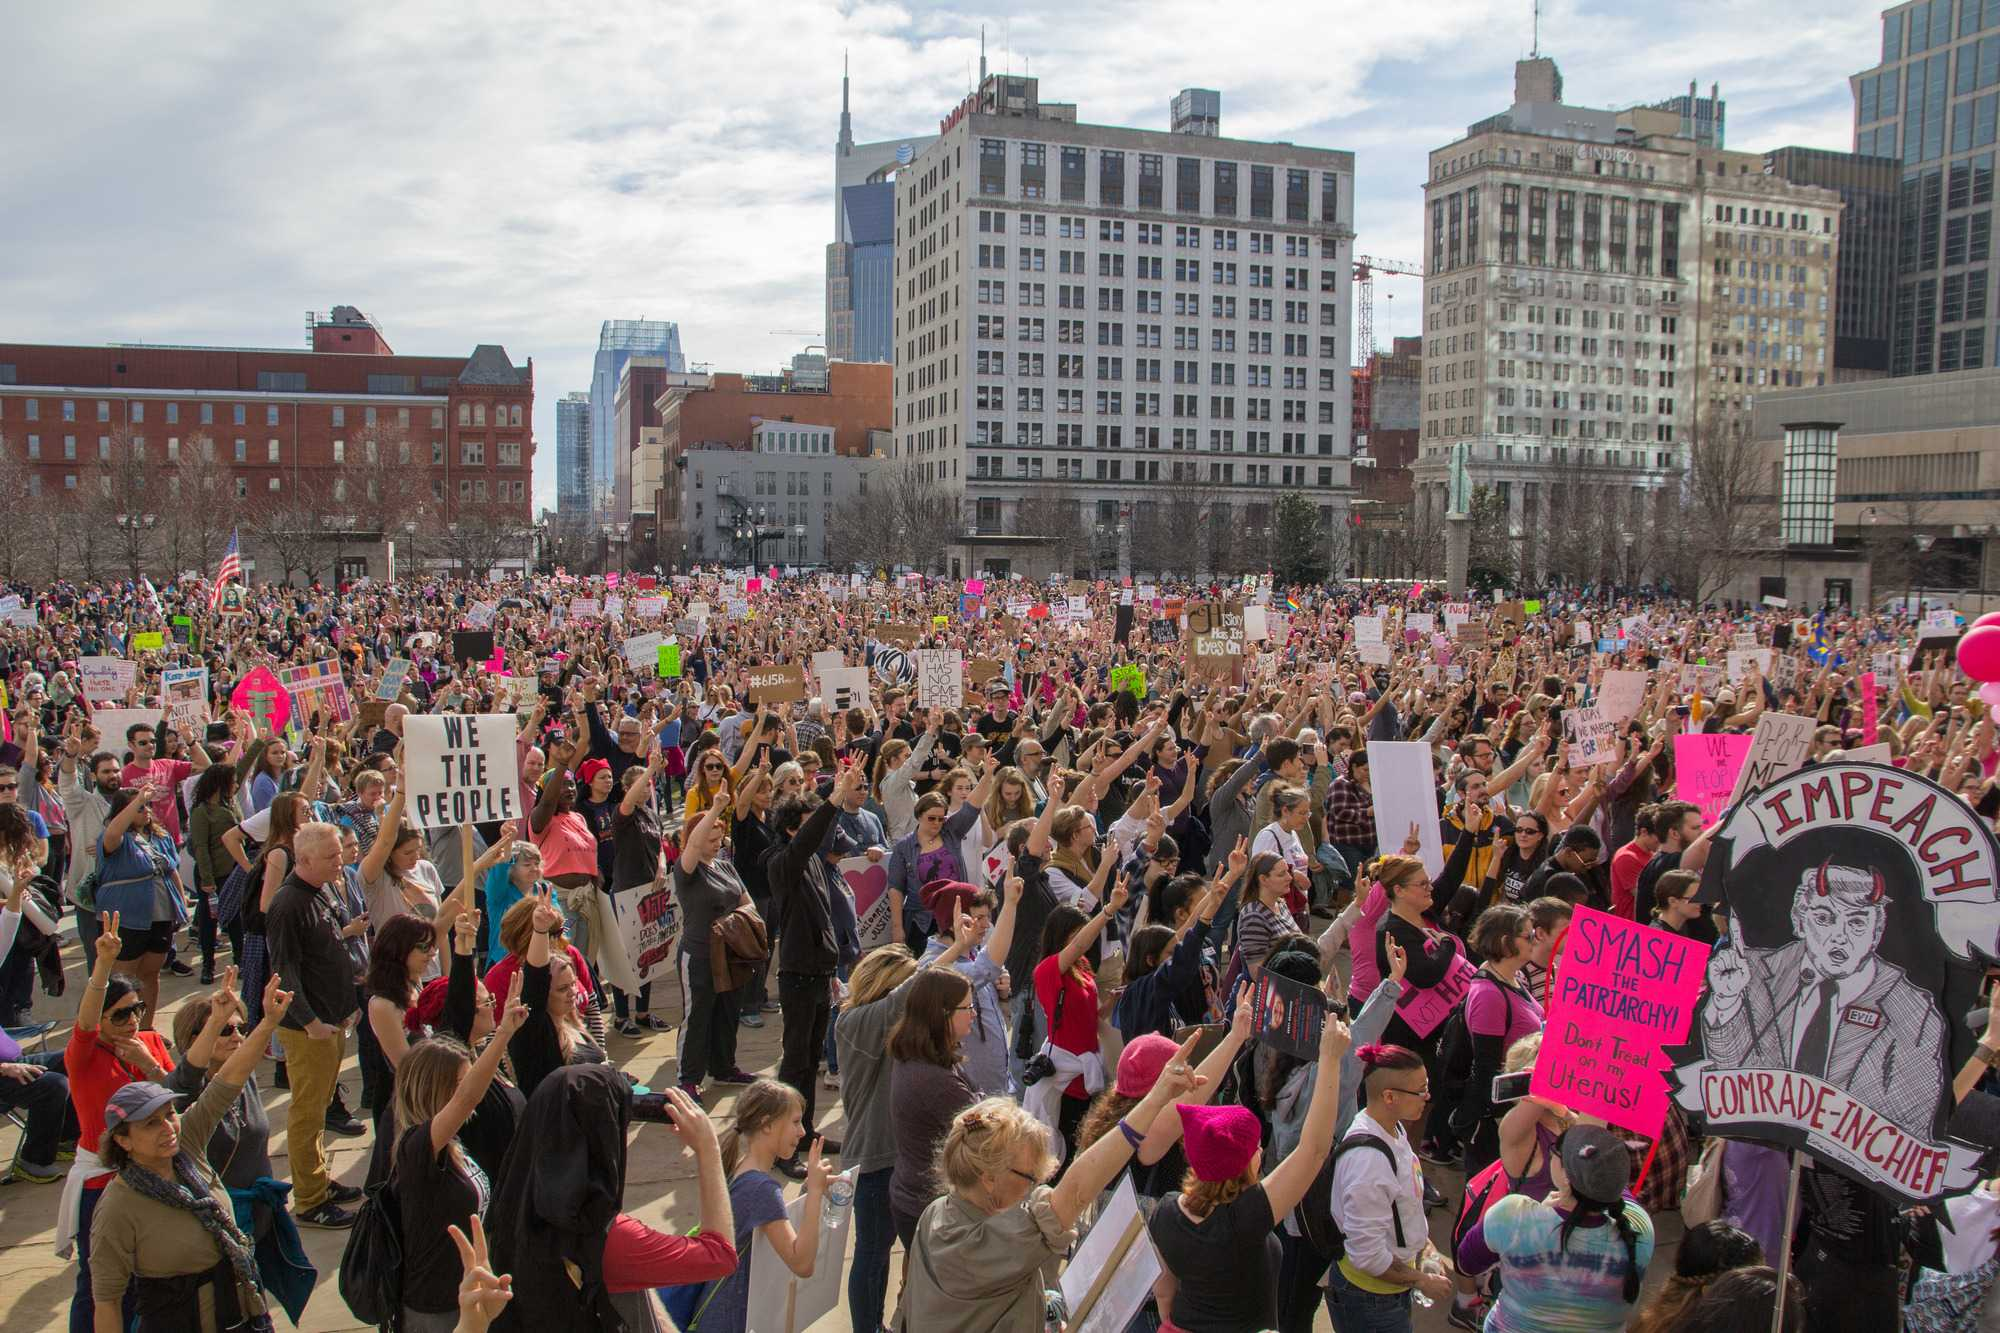 January 21st, 2017 – Thousands of women and men gather in downtown Nashville in tandem with hundreds sister marches around the world following the innaguration of Donald Trump.